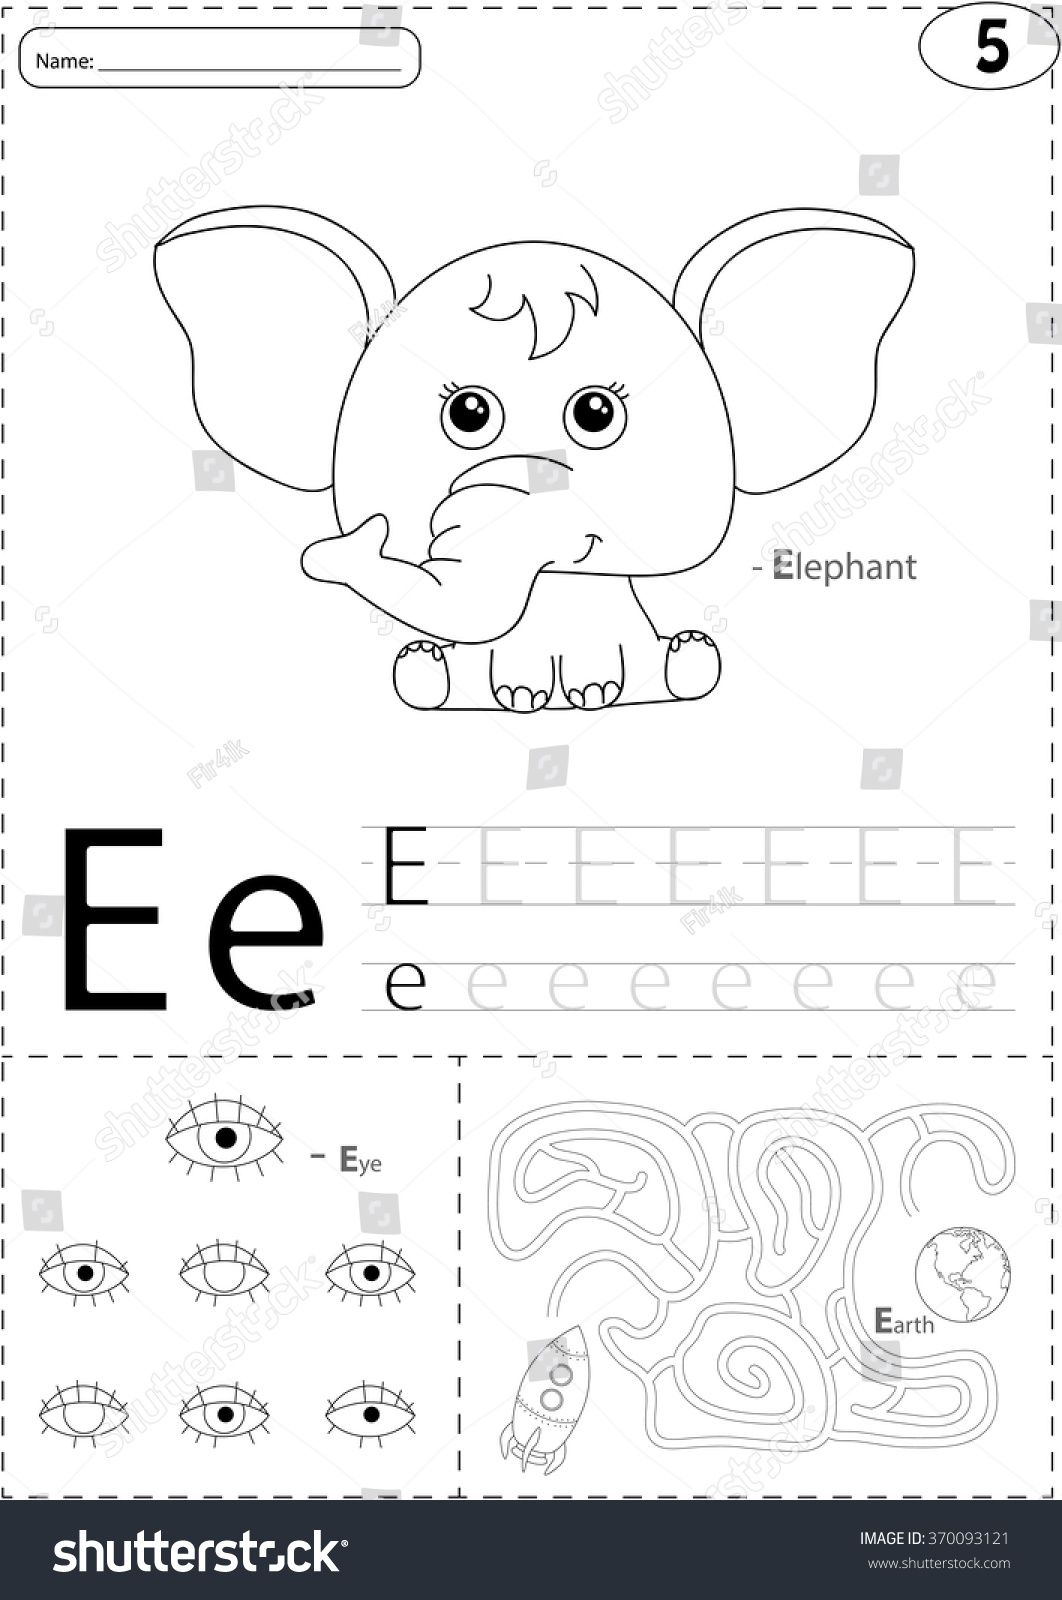 Cartoon Elephant Eye And Earth Alphabet Tracing Worksheet Writing A Z Coloring Book